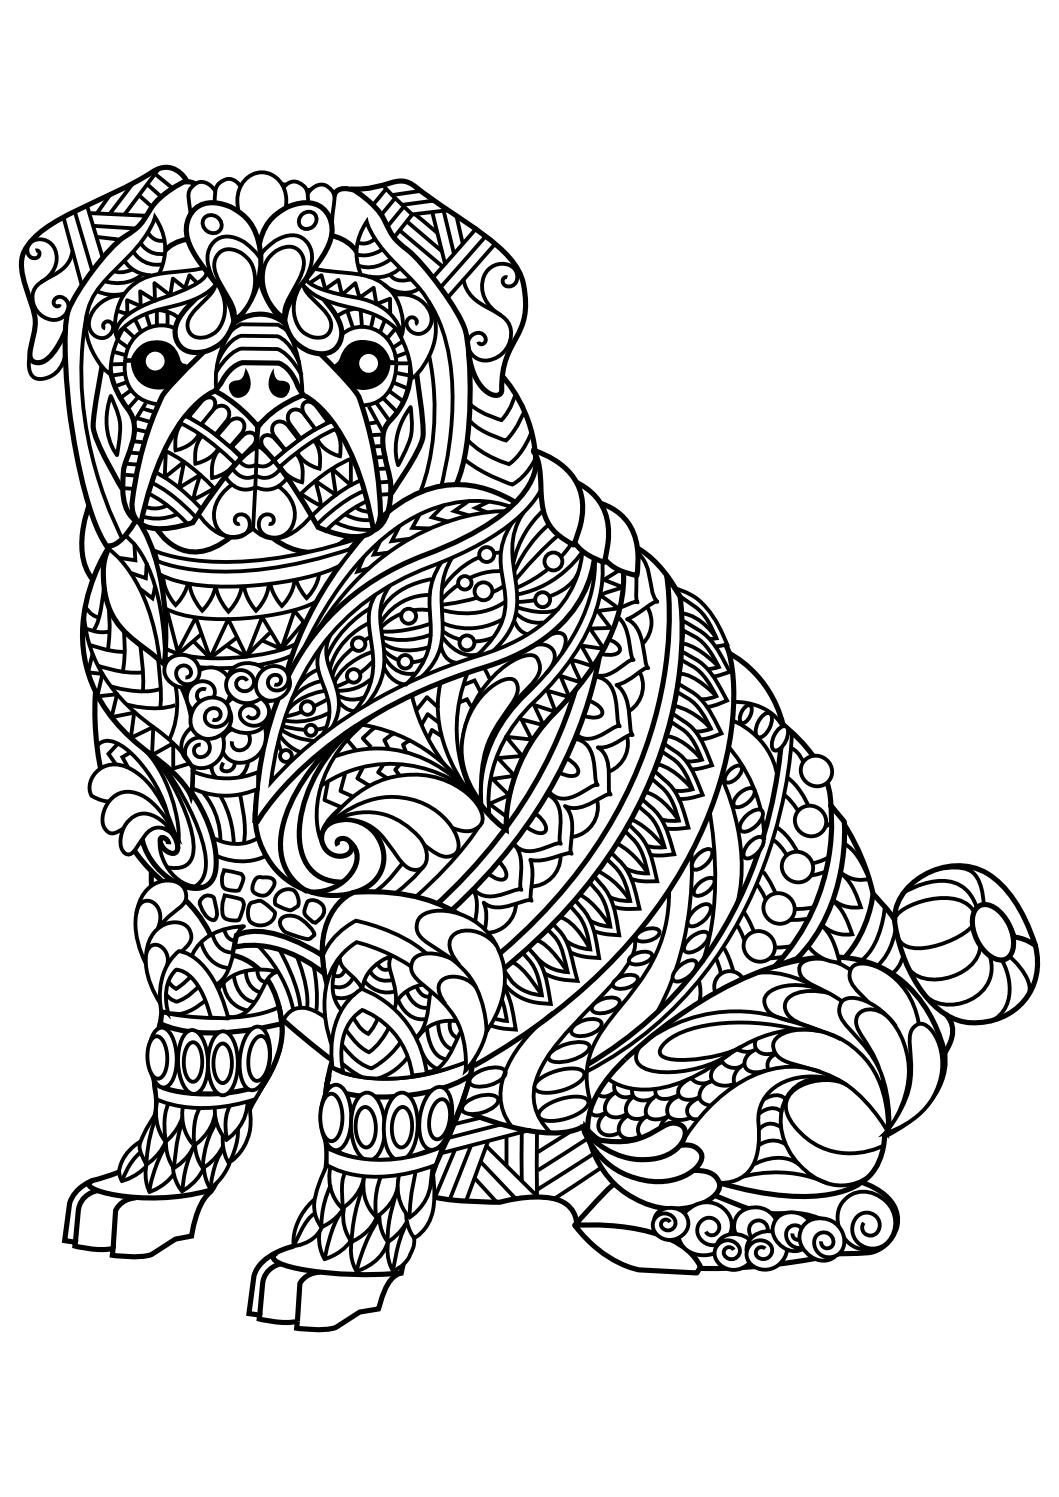 Animal coloring pages pdf Horse coloring pages, Cat